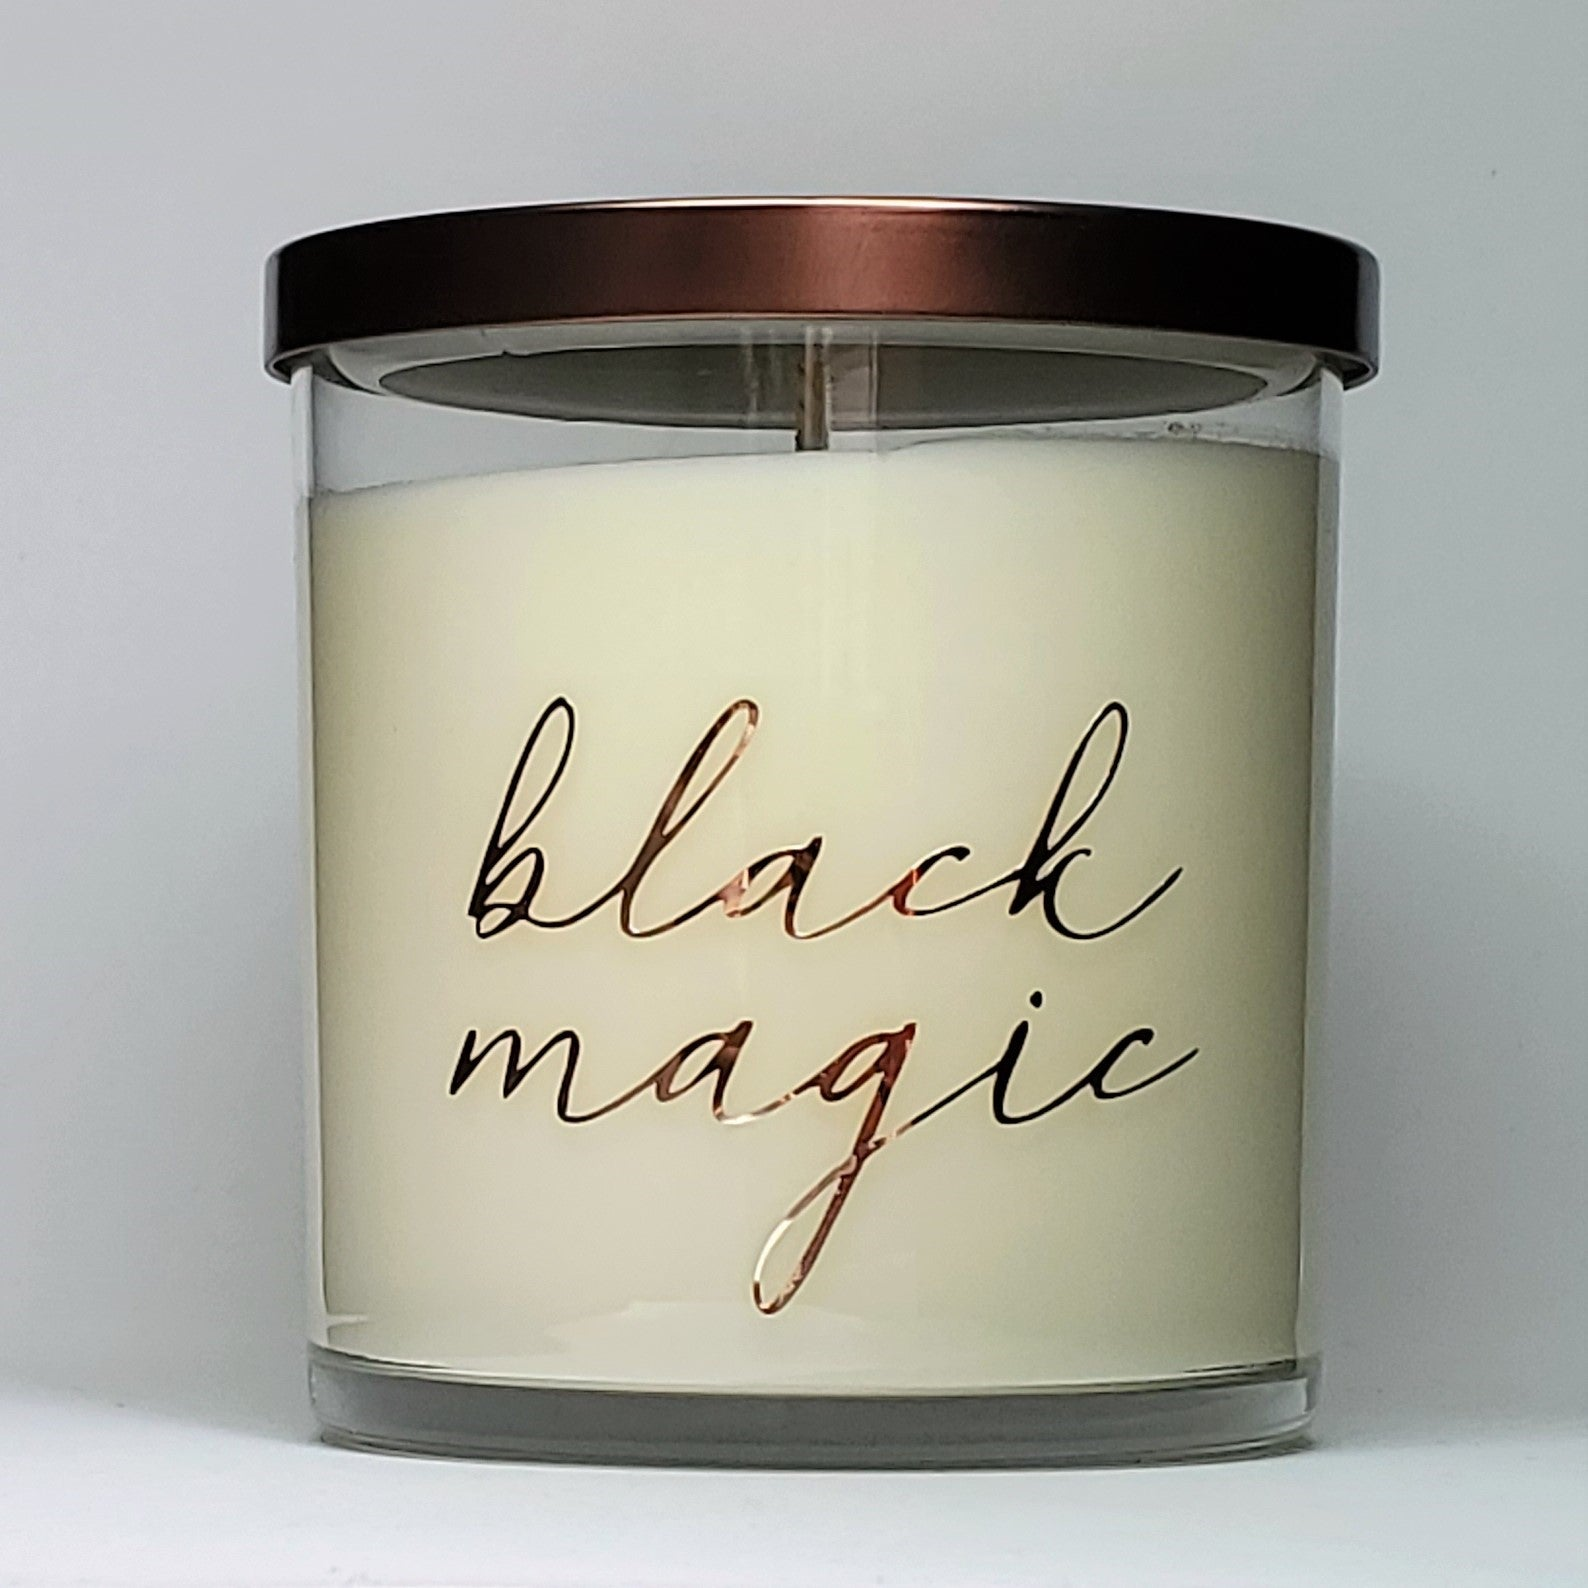 Black Magic scented soy candle. Rose, greenery, amaryllis, nag champa, incense, chardonnay scents. Front view of glass jar with bronze lid. Halloween themed collection, special edition candle.